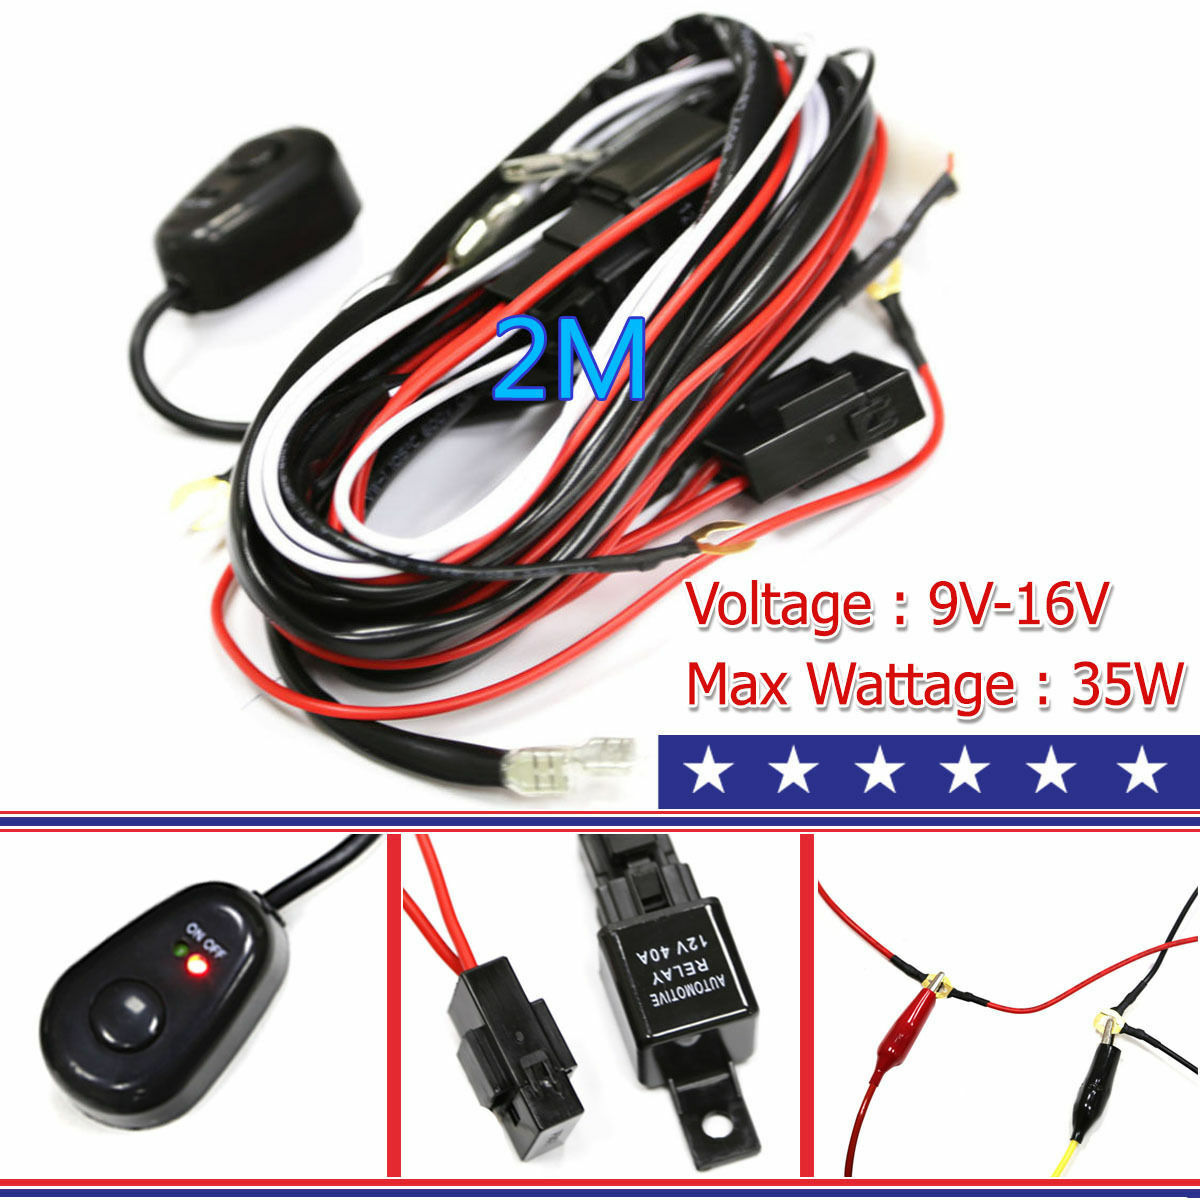 Wiring Harness Kit Line 40A 12V Switch Relay Harness For 2 ... on wiring diagram, electric motor, electrical conduit, electric power distribution, electrical engineering, alternating current, power cord, distribution board, circuit breaker, power cable, earthing system, knob-and-tube wiring, ground and neutral, junction box, three-phase electric power, extension cord, national electrical code,